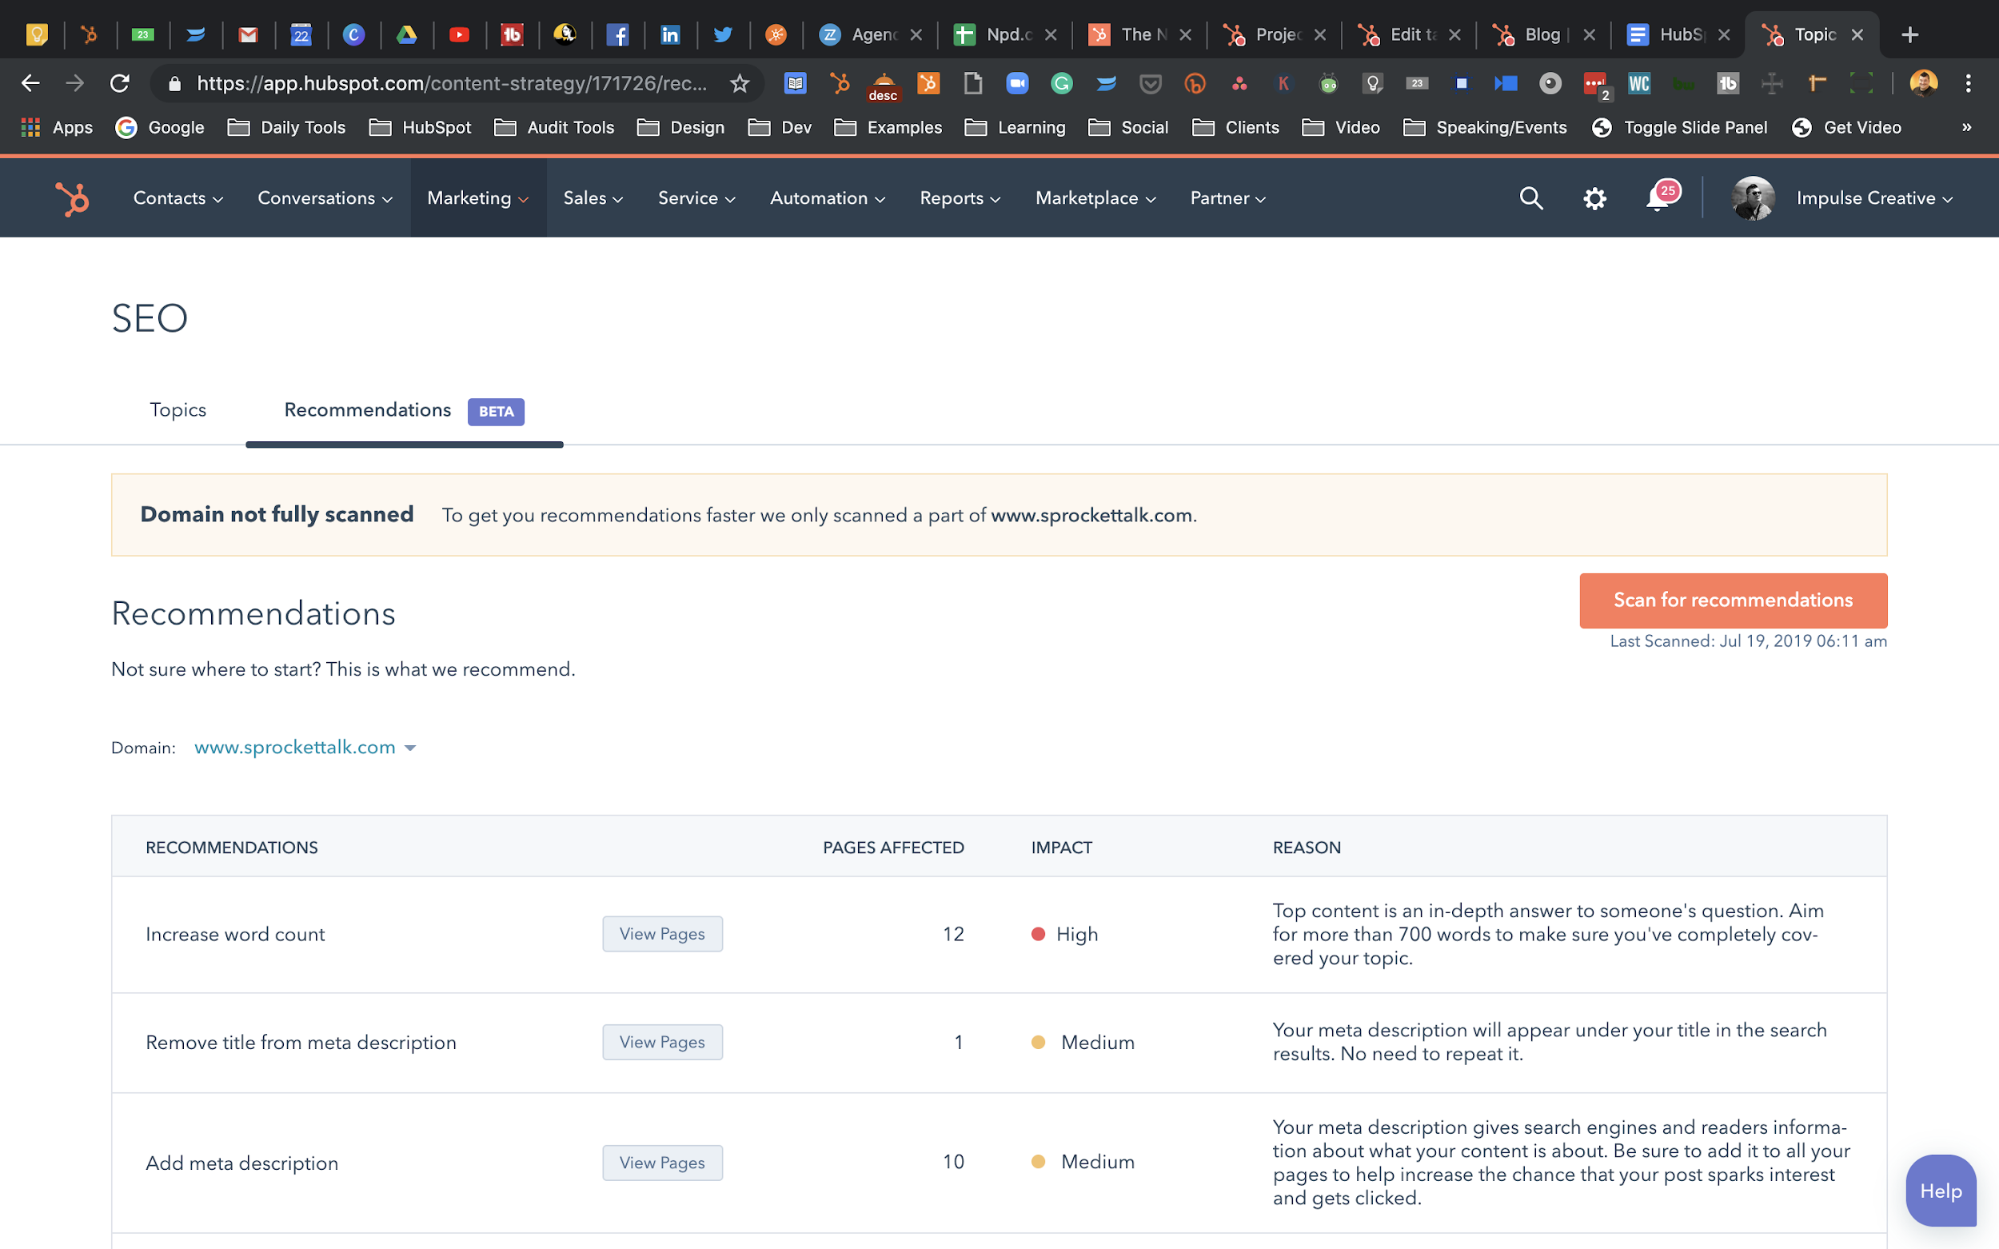 SEO for one of 5 hubspot hacks you didn't know you needed